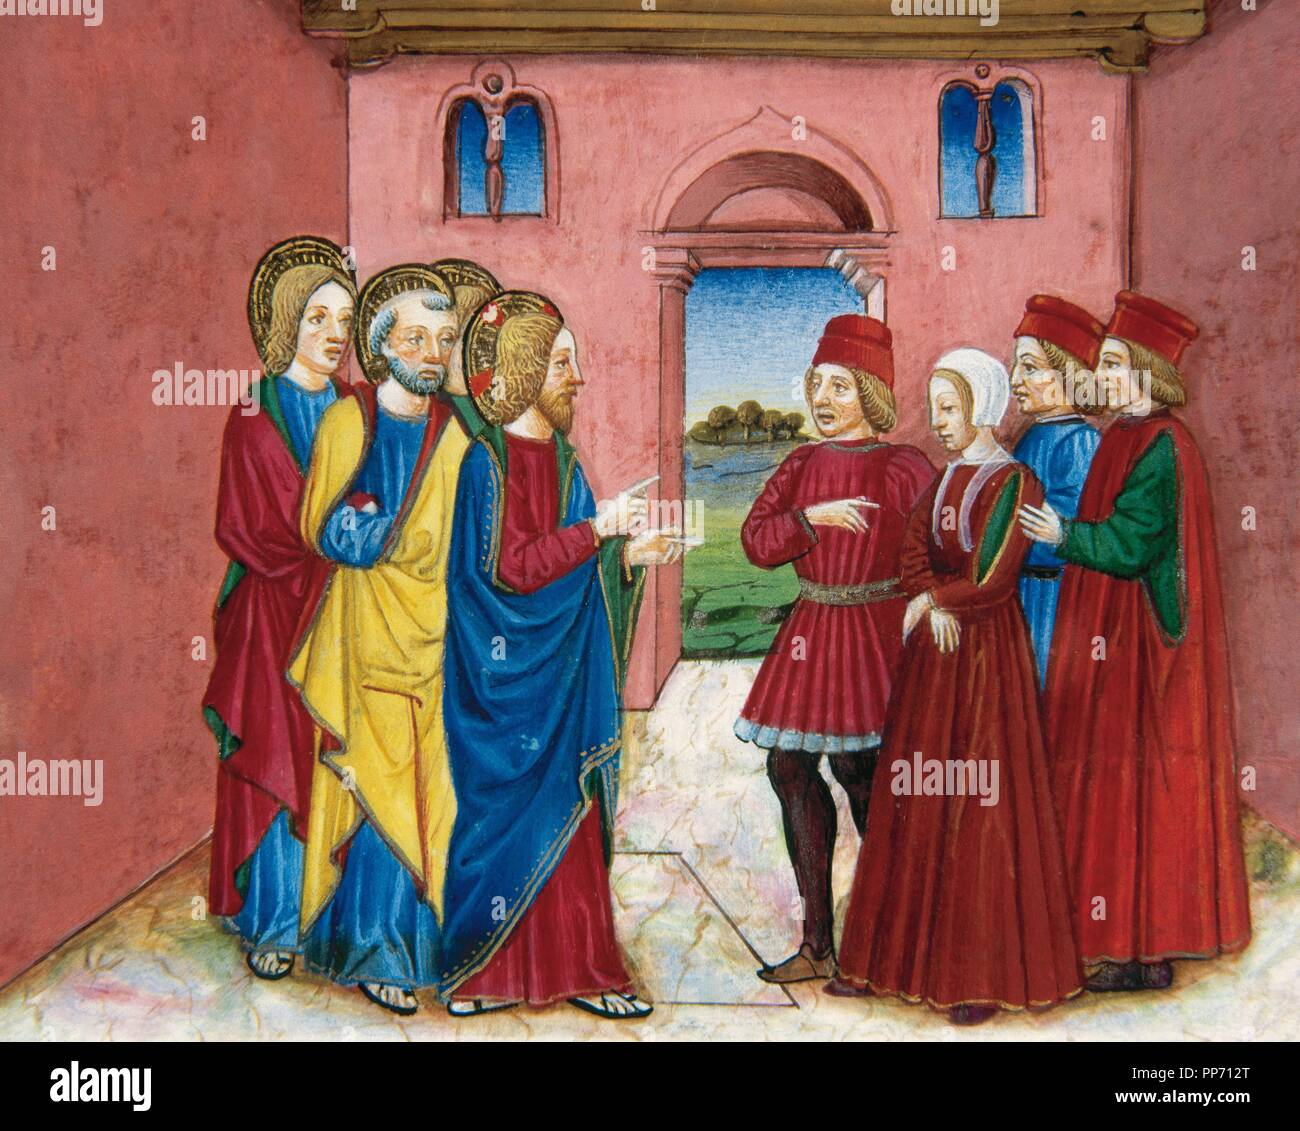 Cristoforo de Predis (1440-1486). Italian miniaturist. Miniature depicting the Pharisees bringing before Jesus a woman accused of adultery. In Stories of Saint Joachim, Saint Anne, Virgin Mary, Jesus, the Baptist and the End of the World, 1476, written by Galeazzo Maria Sforza (1444-1476). Royal Library. Turin. italy. Stock Photo